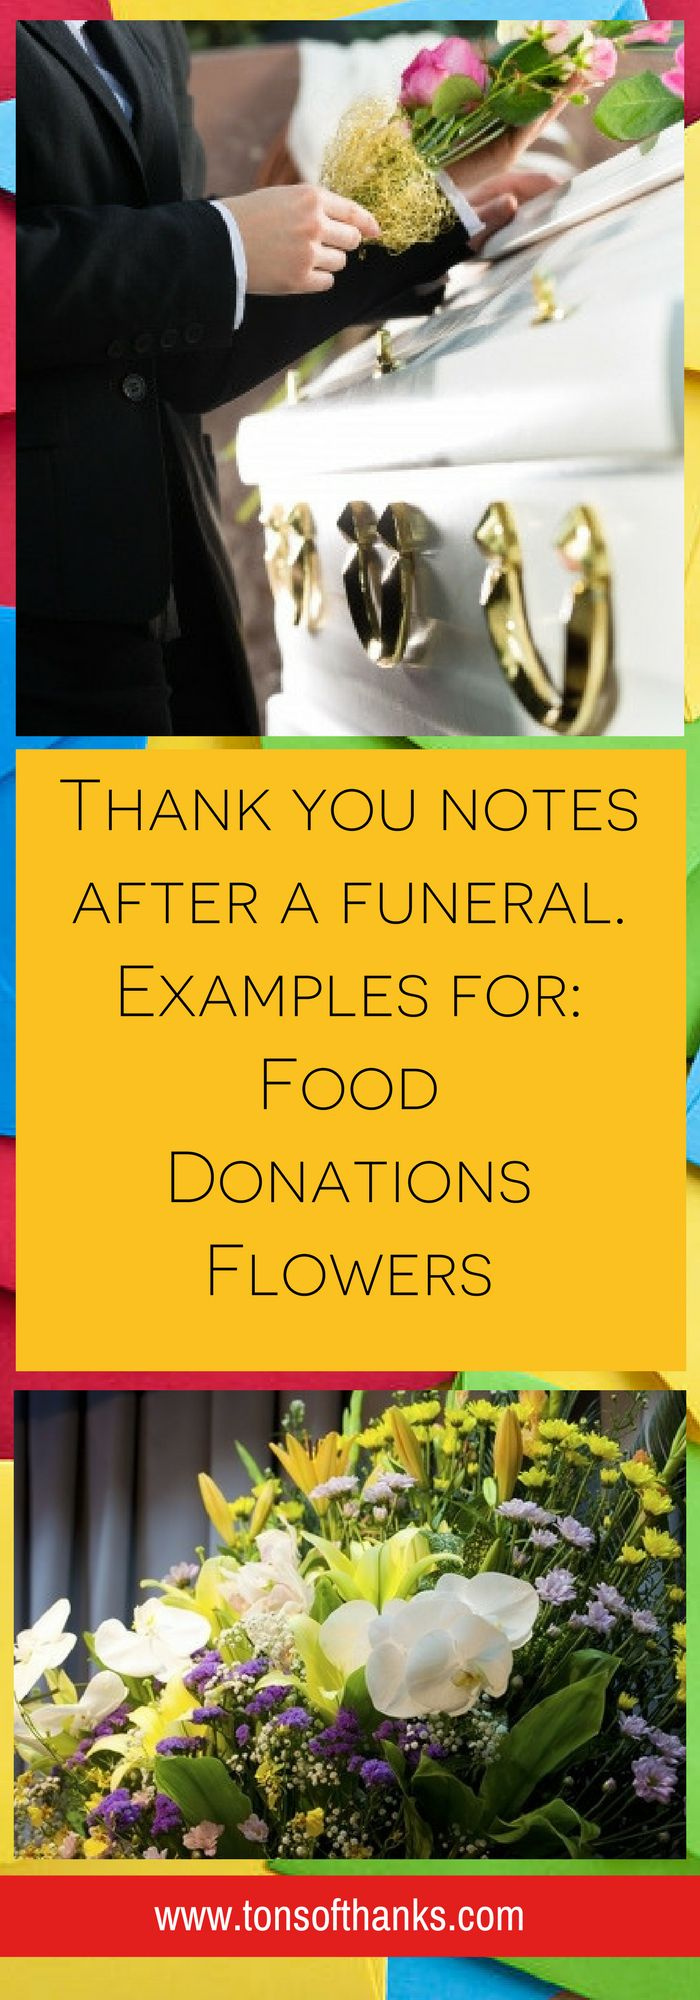 Best 25 Funeral Homes Ideas On Pinterest: The 25+ Best Funeral Thank You Notes Ideas On Pinterest